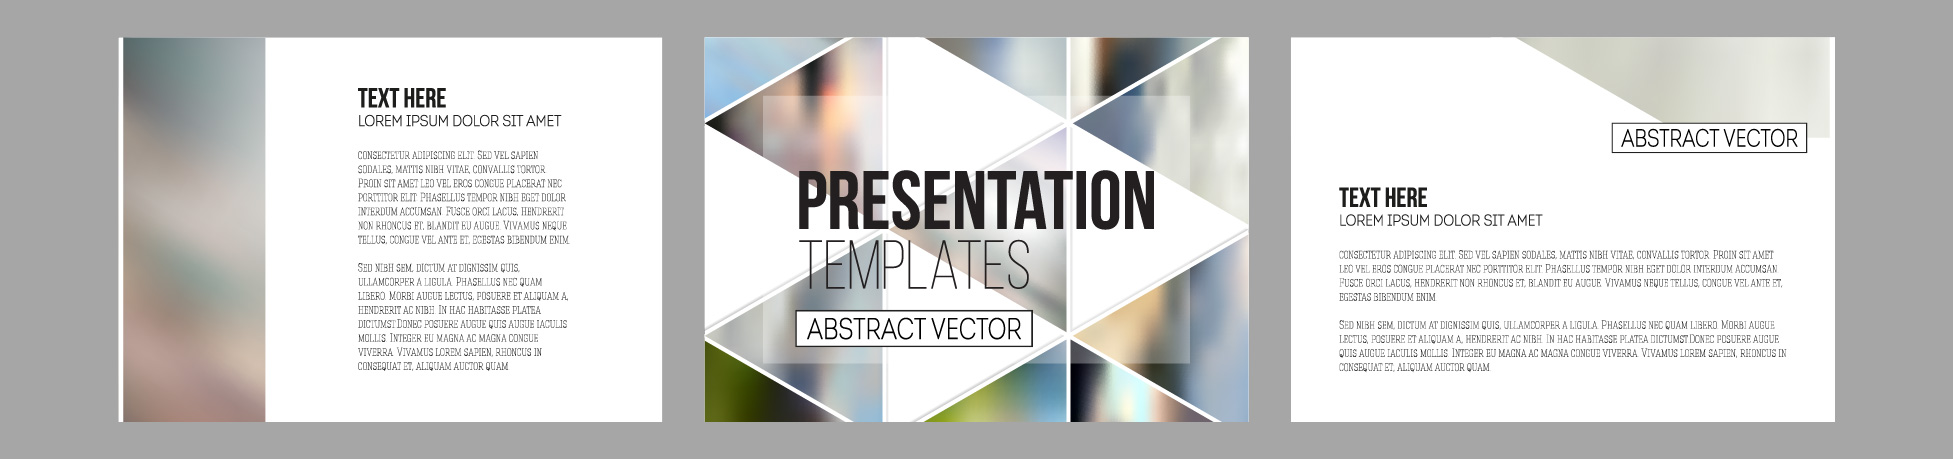 Powerpoint templates office templates custom powerpoint template with animation toneelgroepblik Choice Image